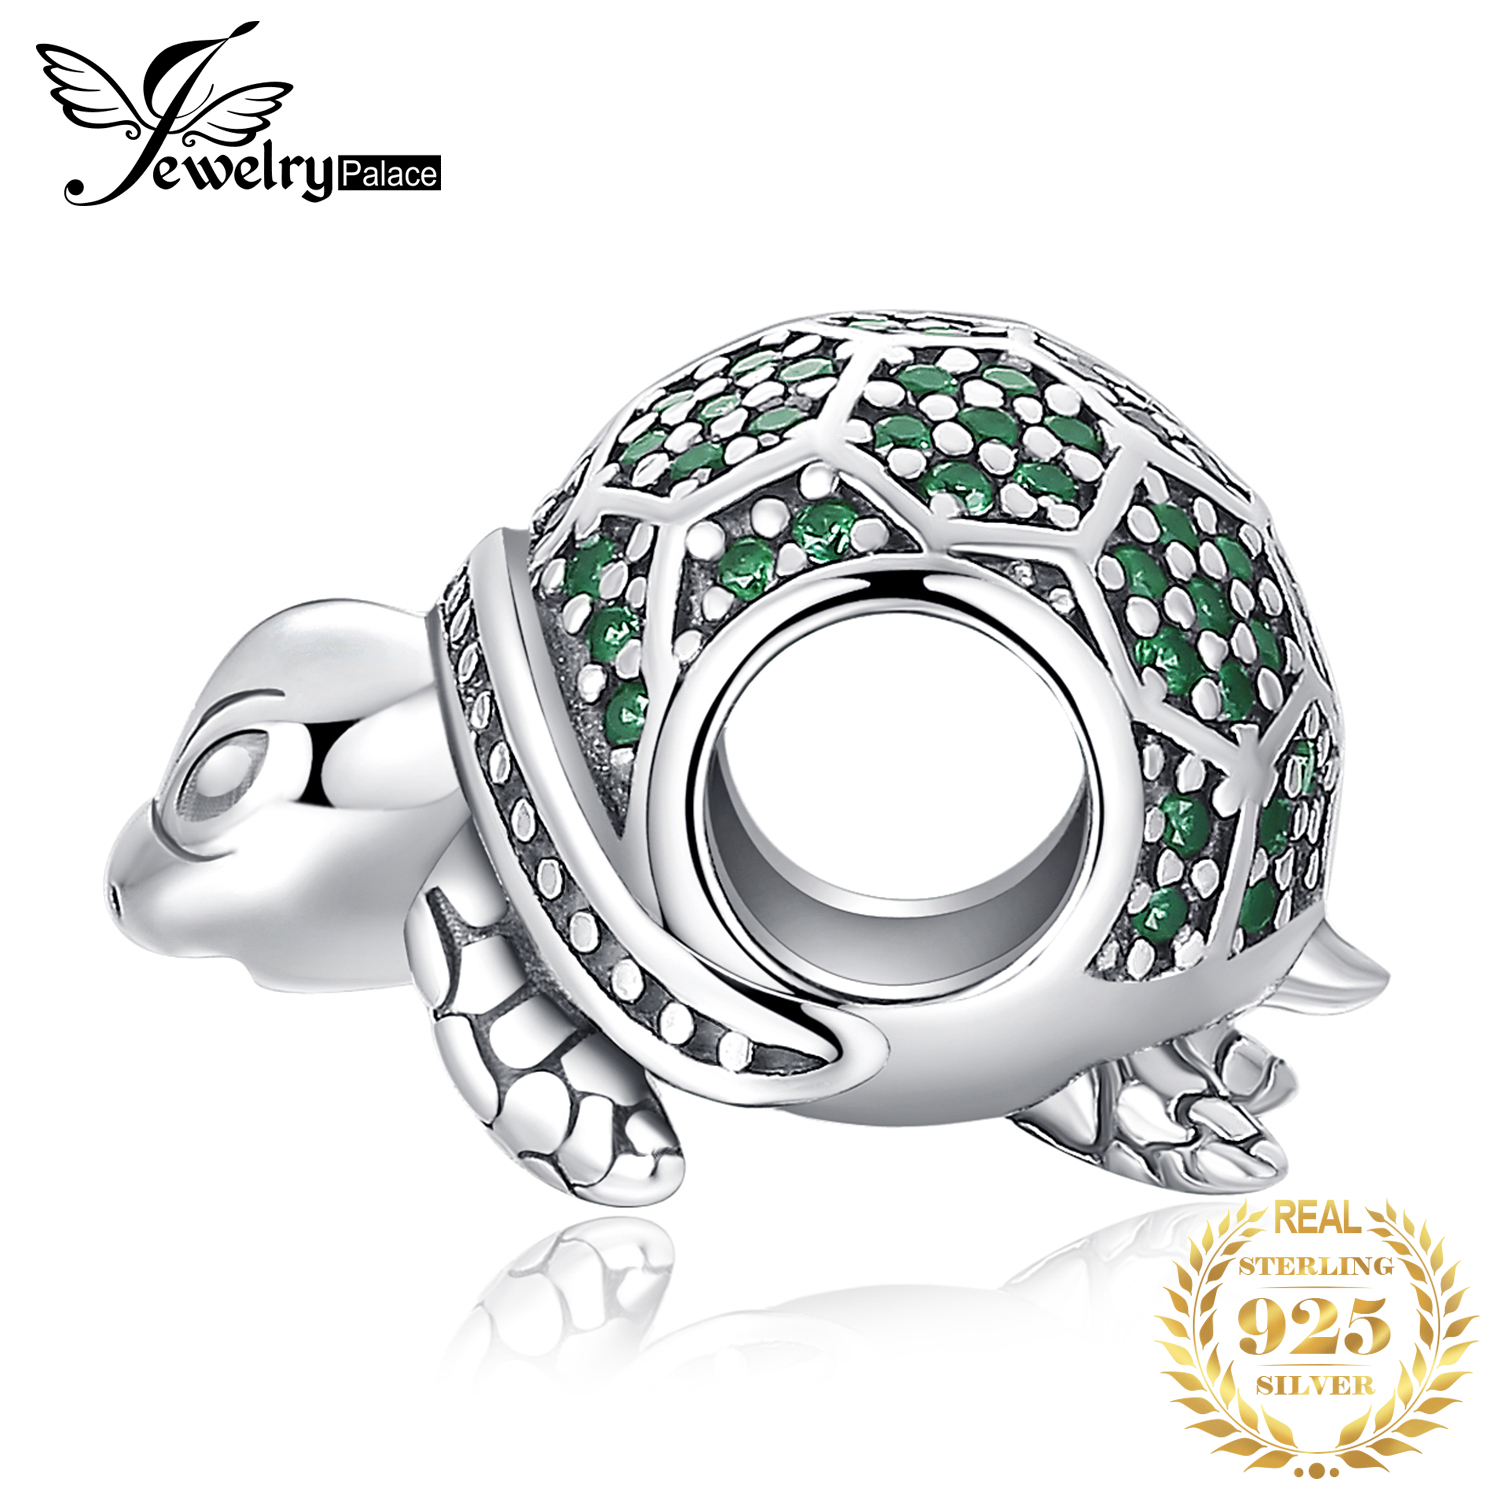 JewelryPalace Turtle 925 Sterling Silver Beads Charms Silver 925 Original For Bracelet Silver 925 Original Beads Jewelry Making